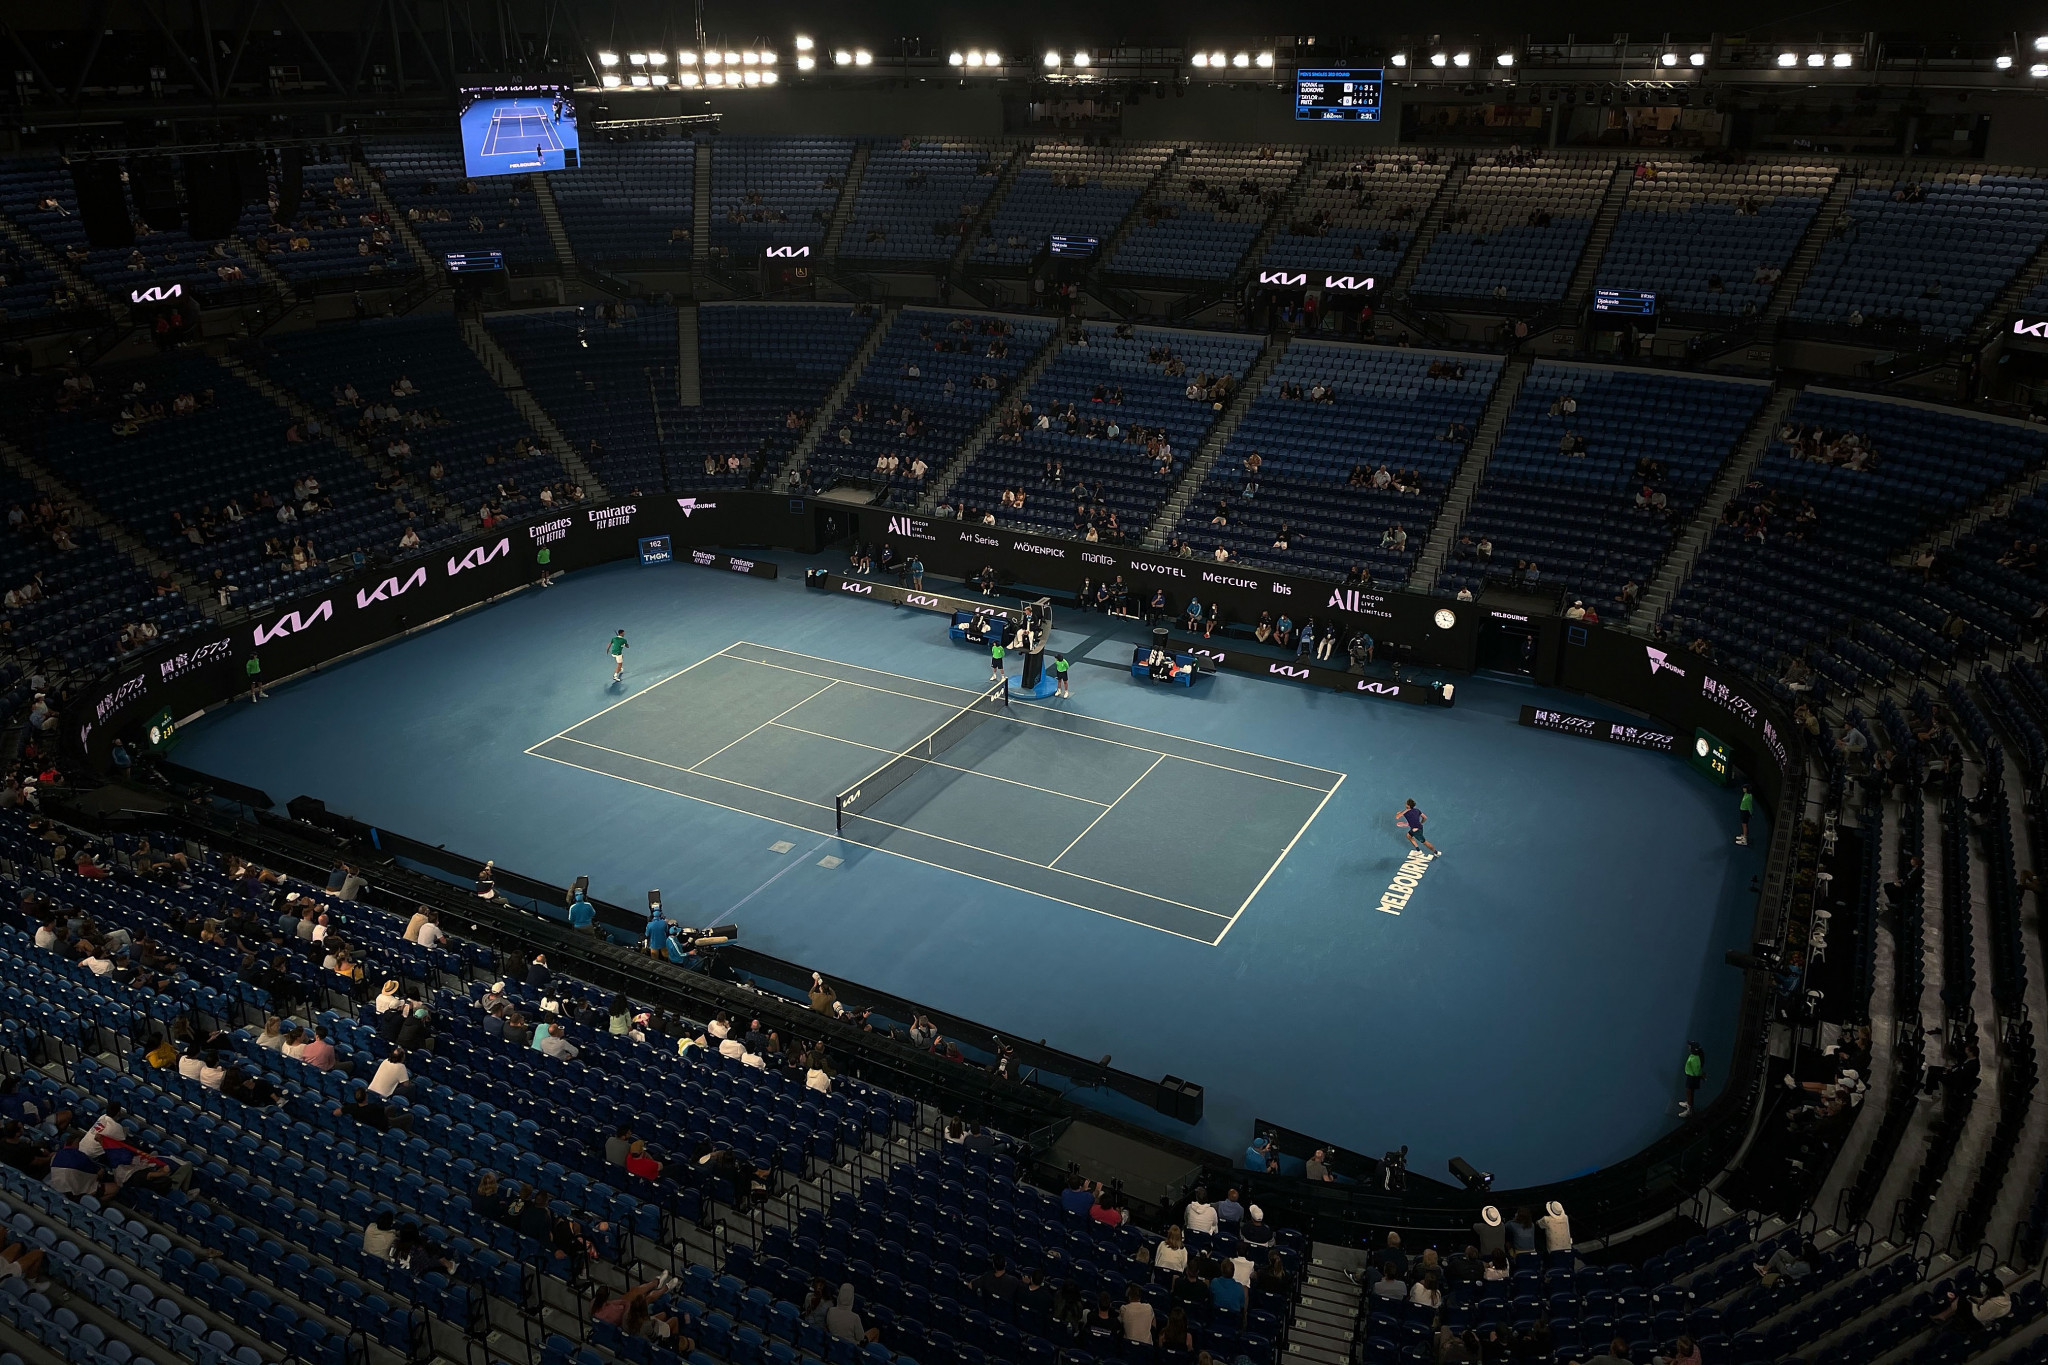 The Australian Open has taken place with limited, and at times no spectators due to COVID-19 restrictions ©Getty Images